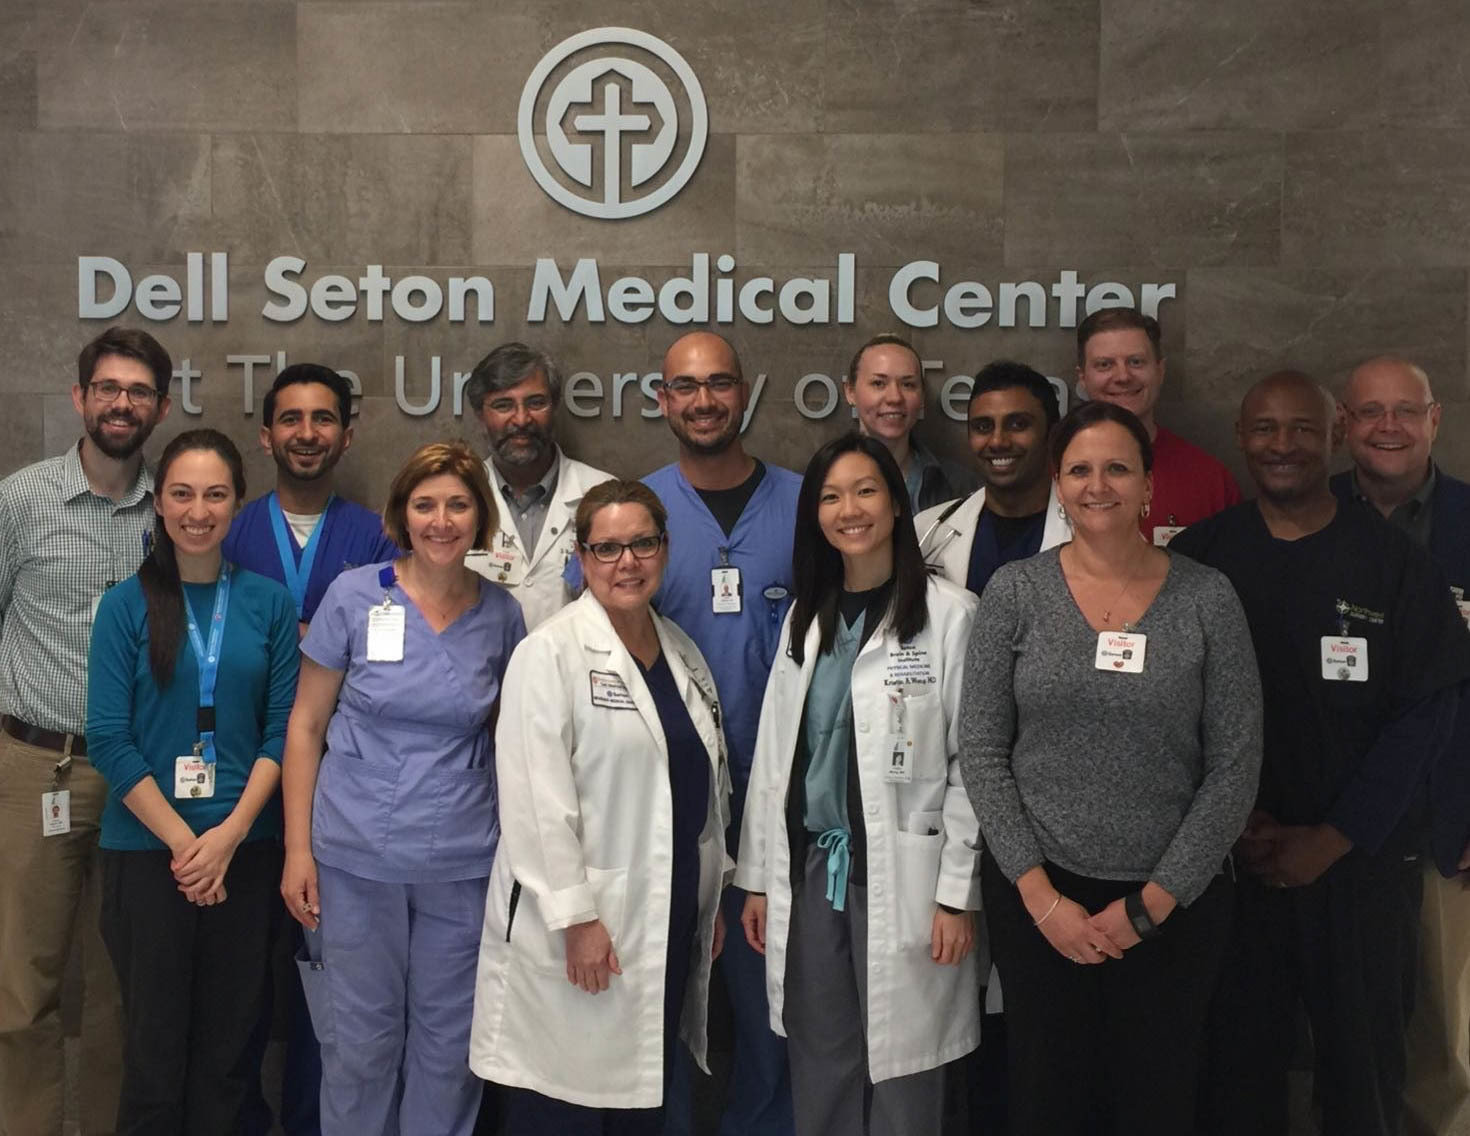 Residents in the Dell Seton Medical Center.